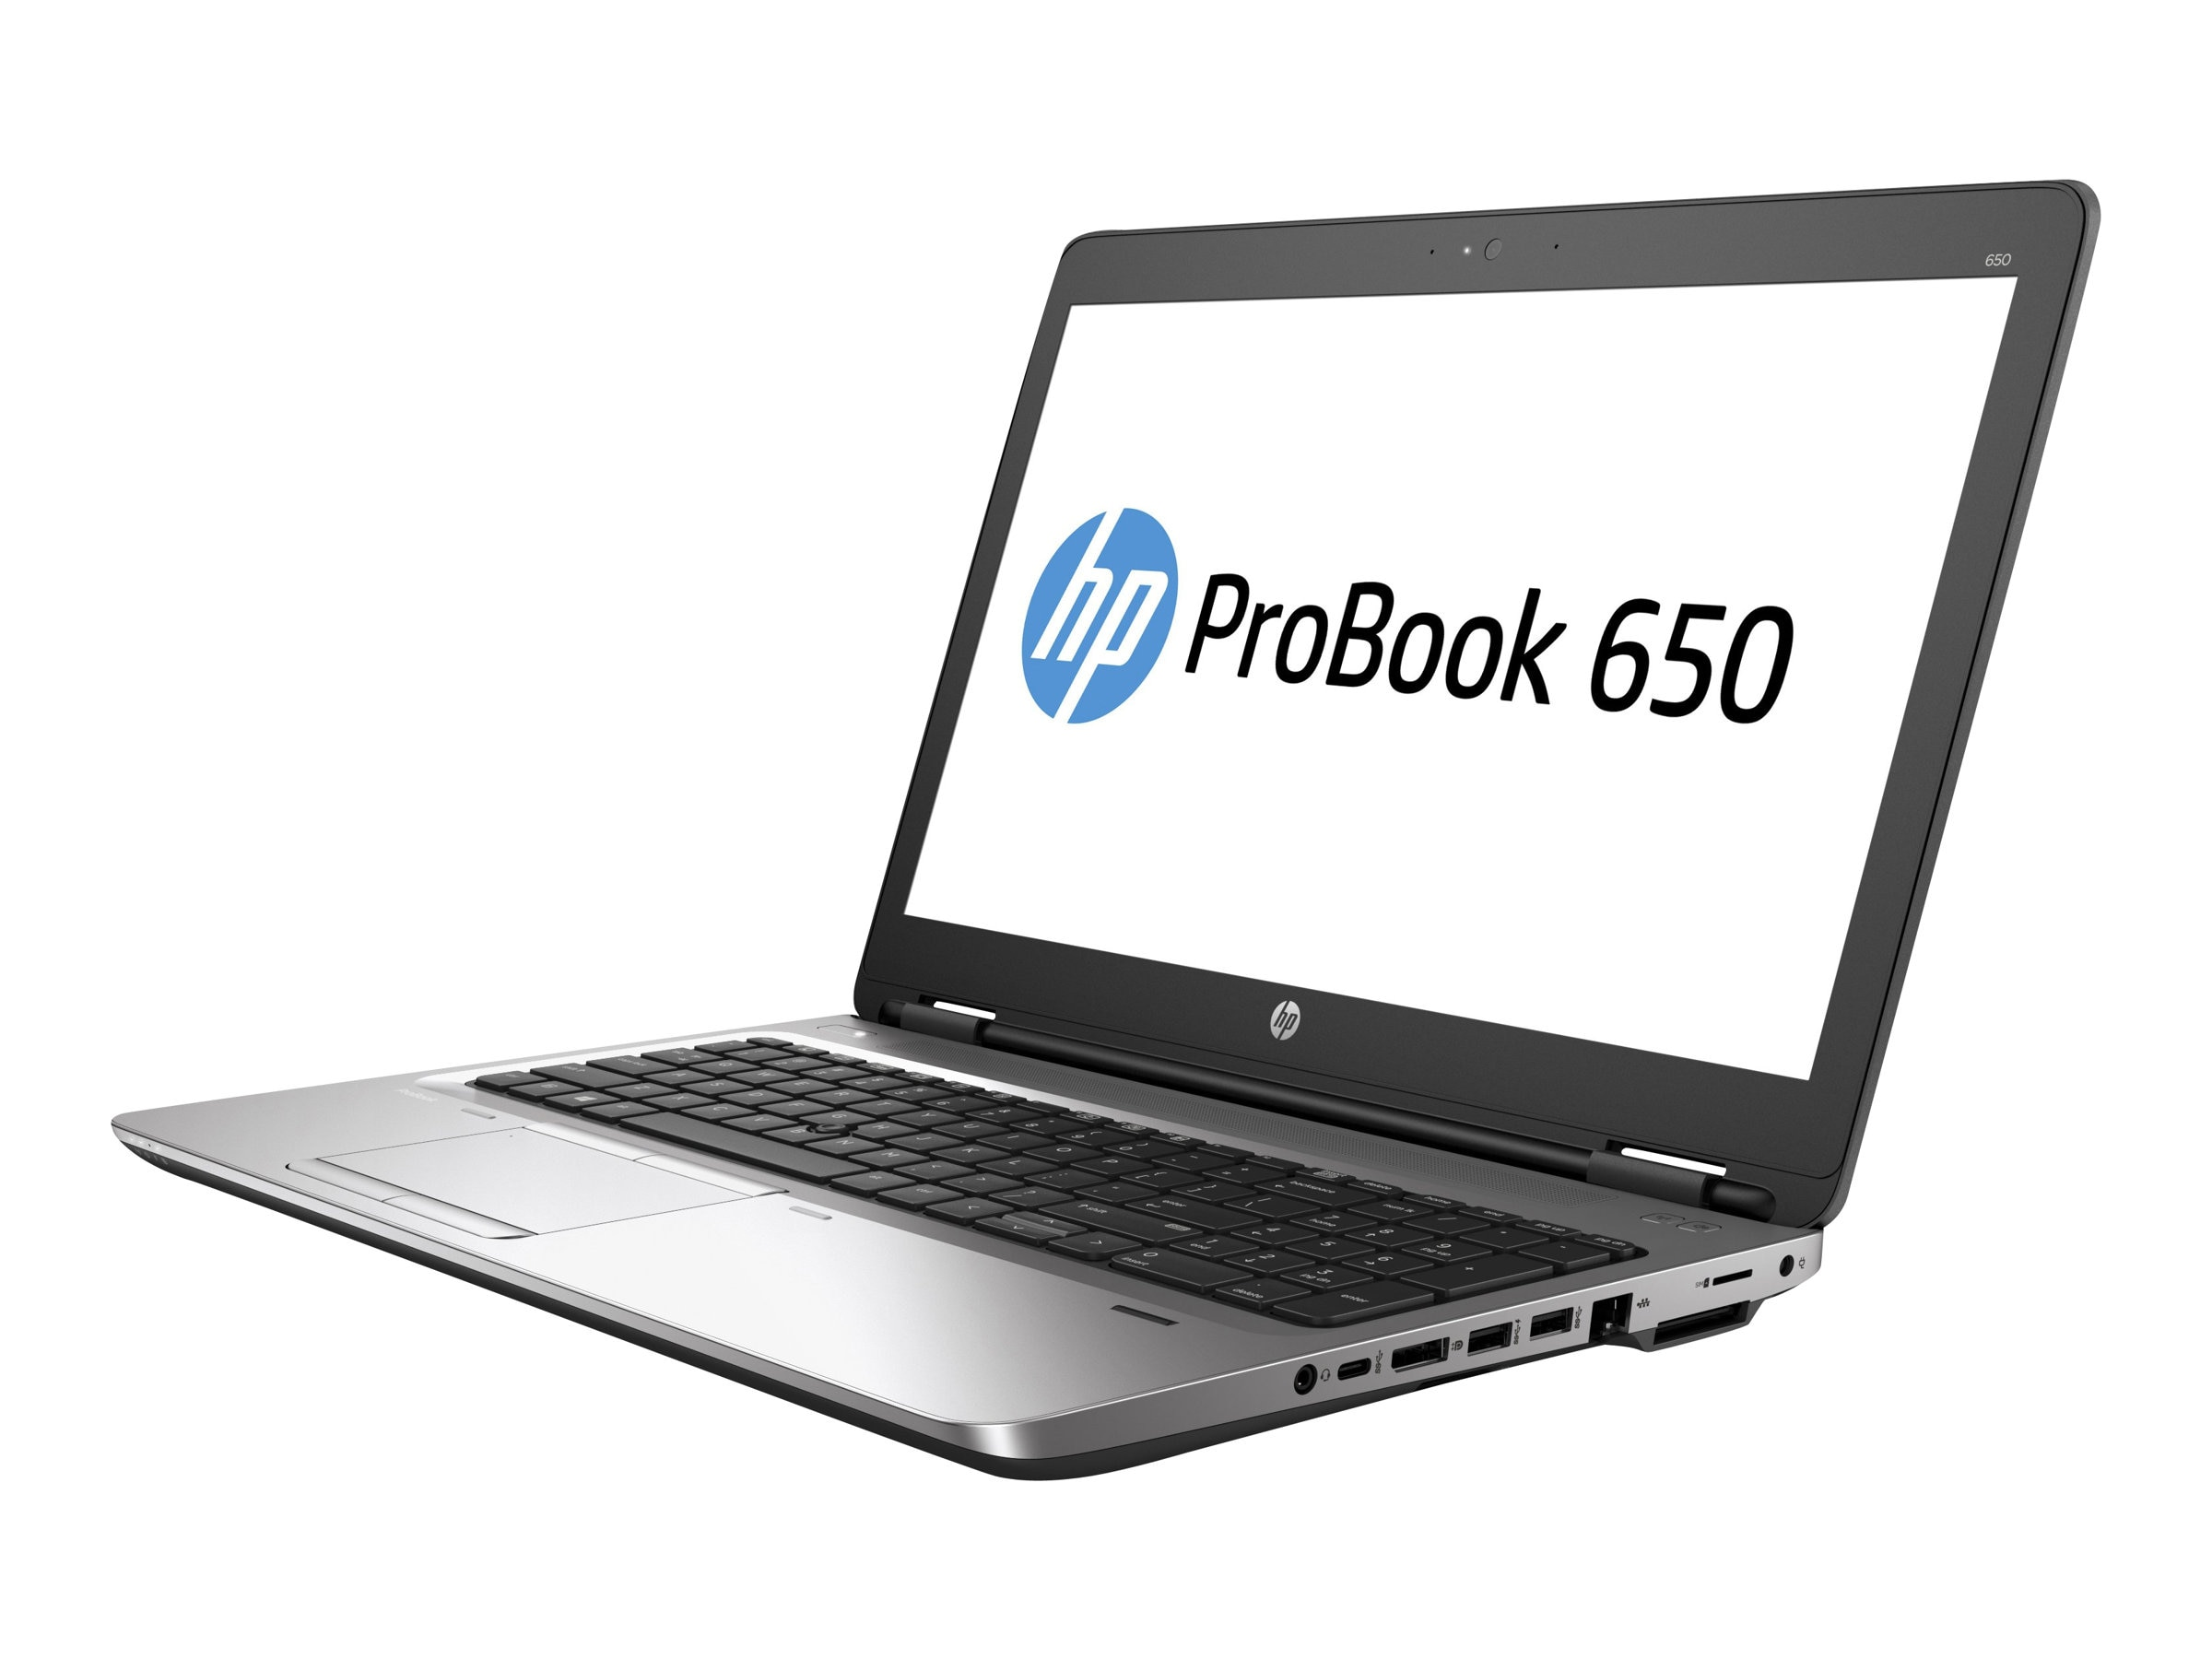 HP ProBook 650 G2 2.4GHz Core i5 15.6in display